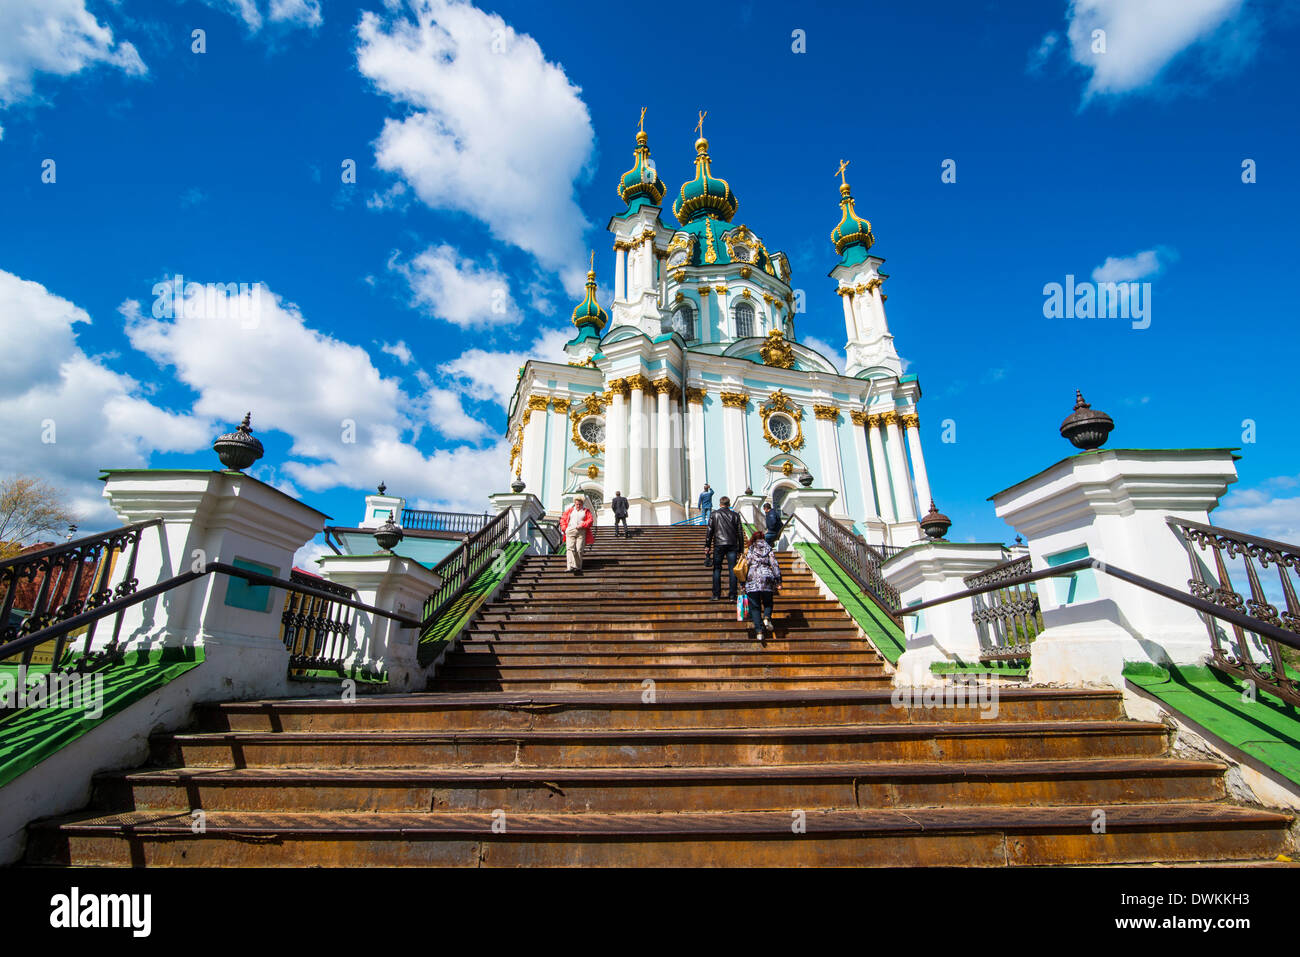 St. Andrews church in Kiev, Ukraine, Europe - Stock Image